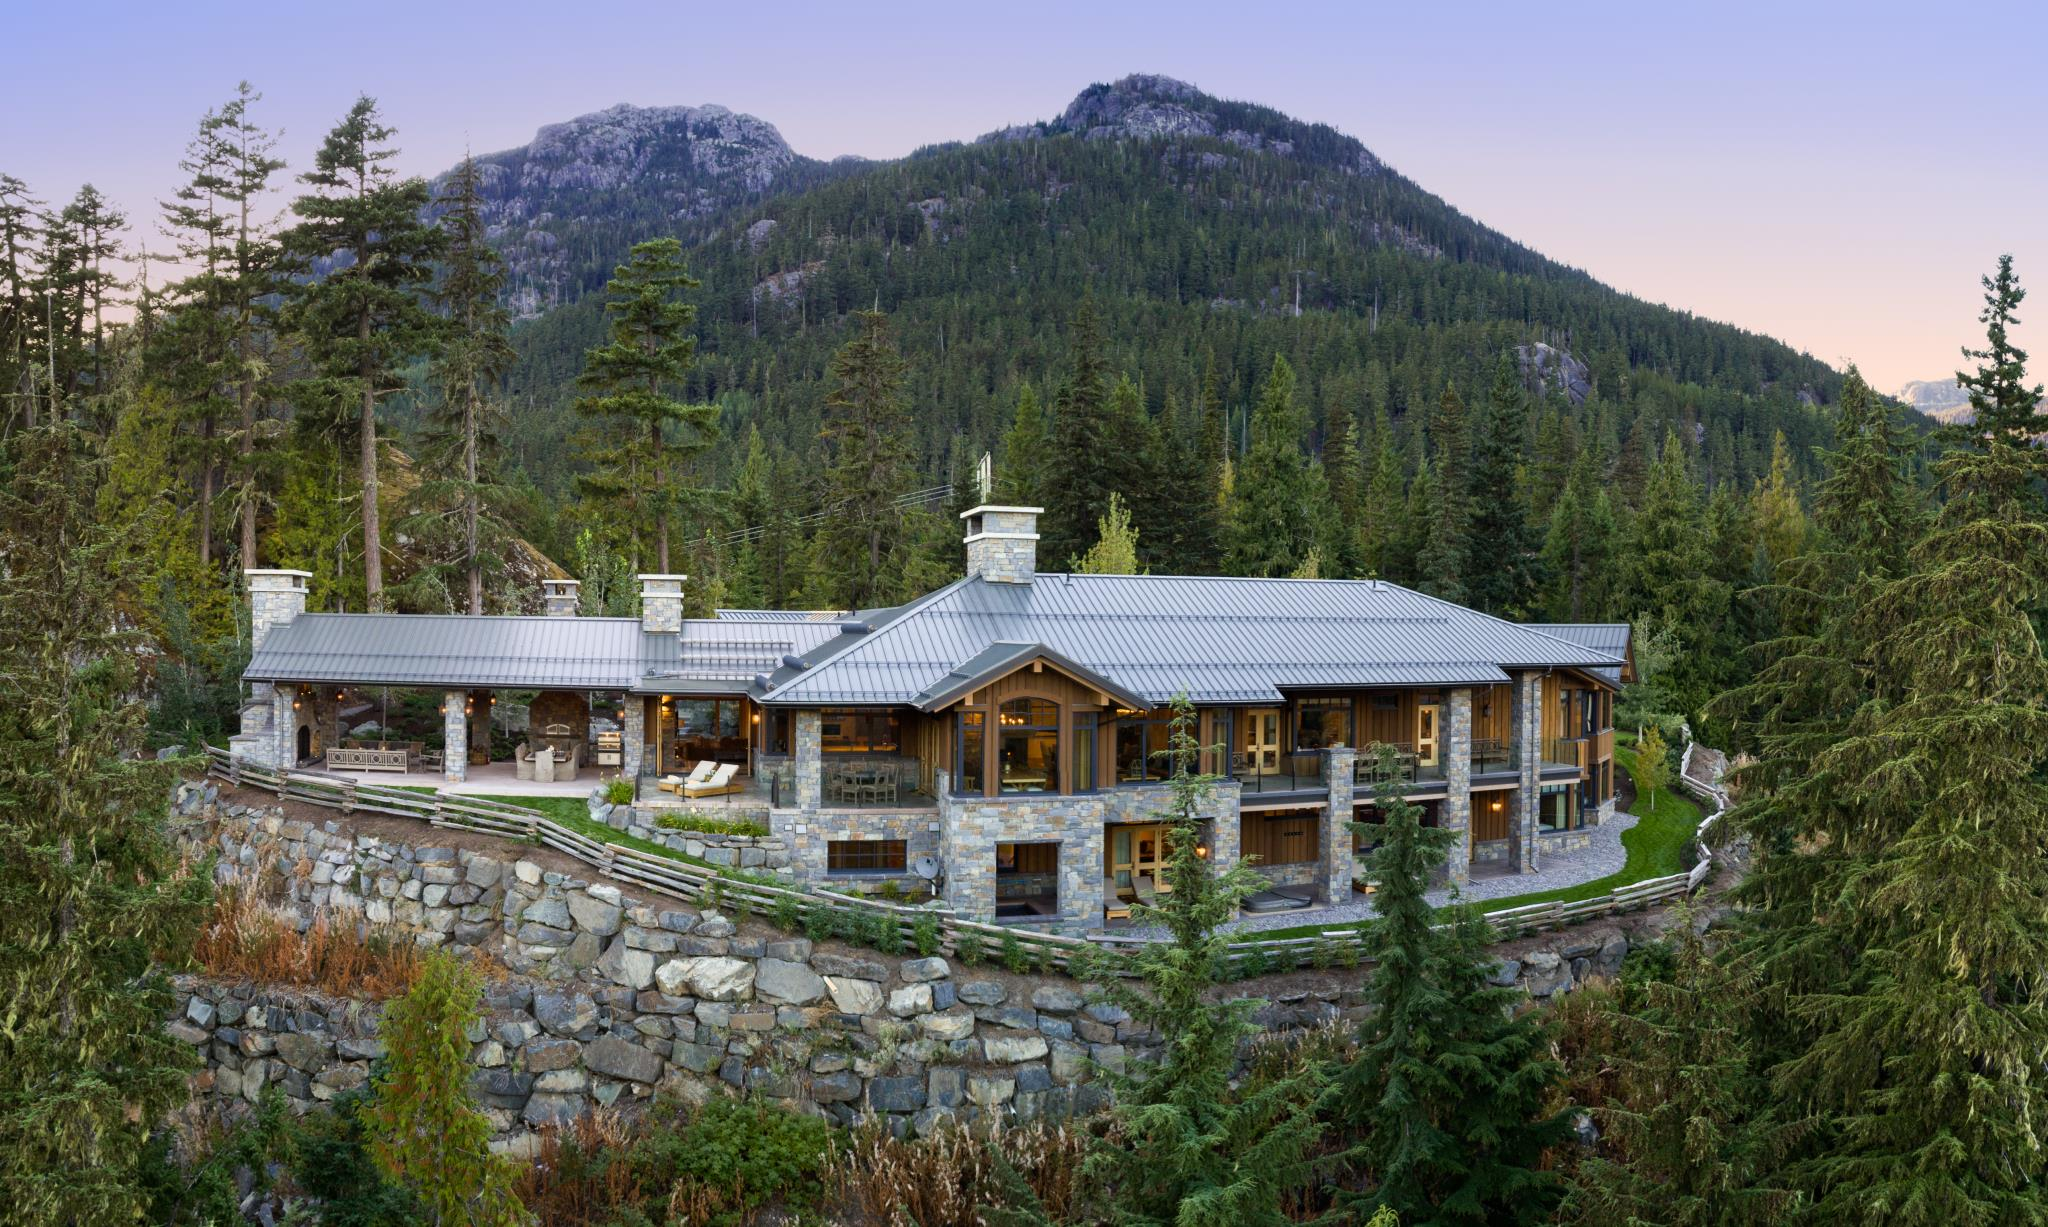 mountain oasis in whistler c 24950000 see it pic by hotspot media smallest house - Smallest House In The World 2016 Inside